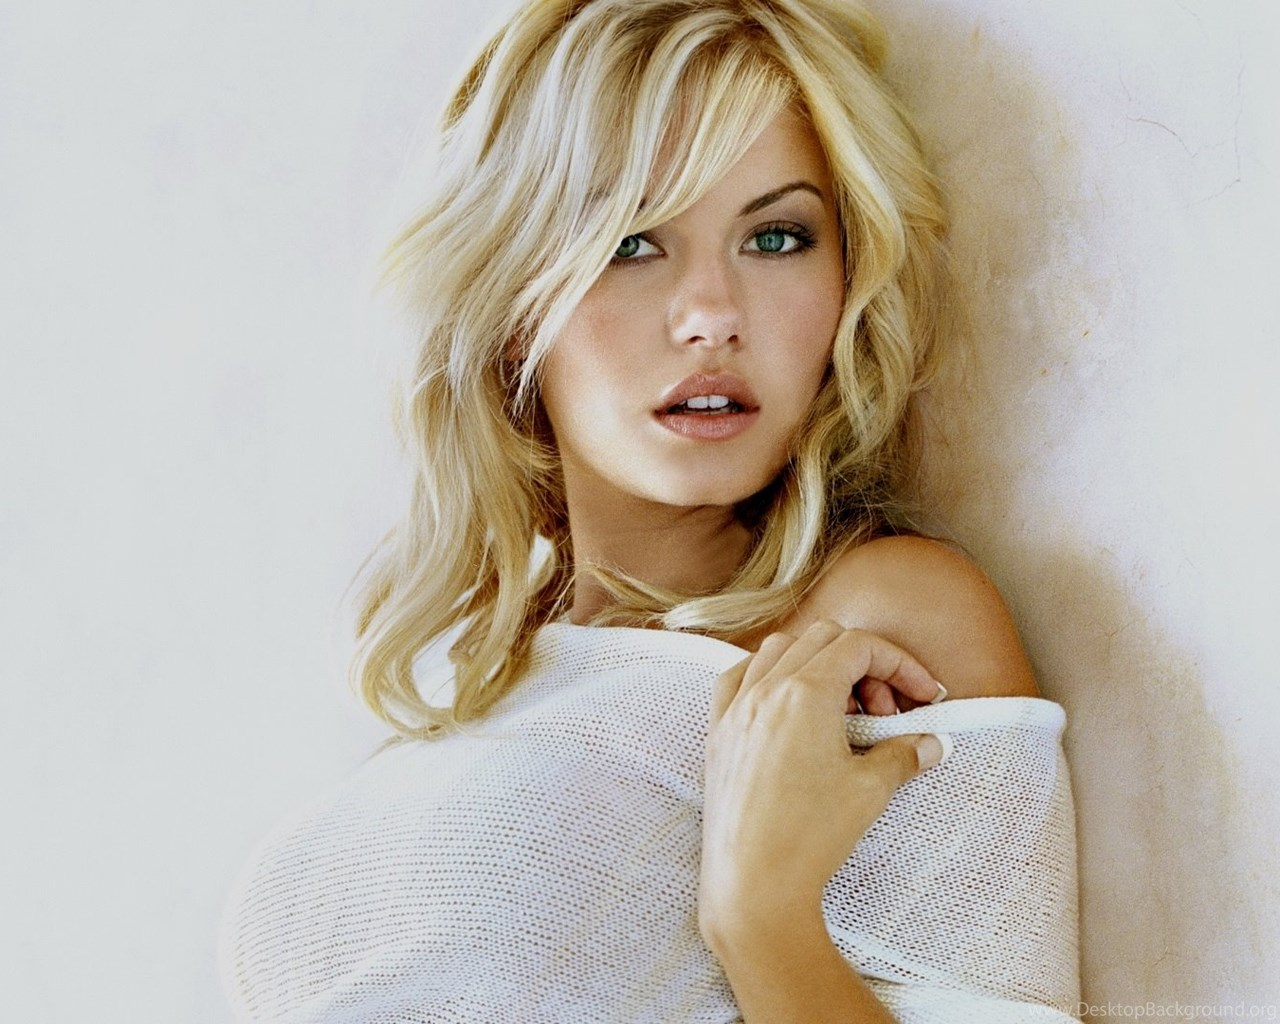 Elisha Cuthbert Hd Wallpapers: Elisha Cuthbert HD Wallpapers For Desktop Download Desktop